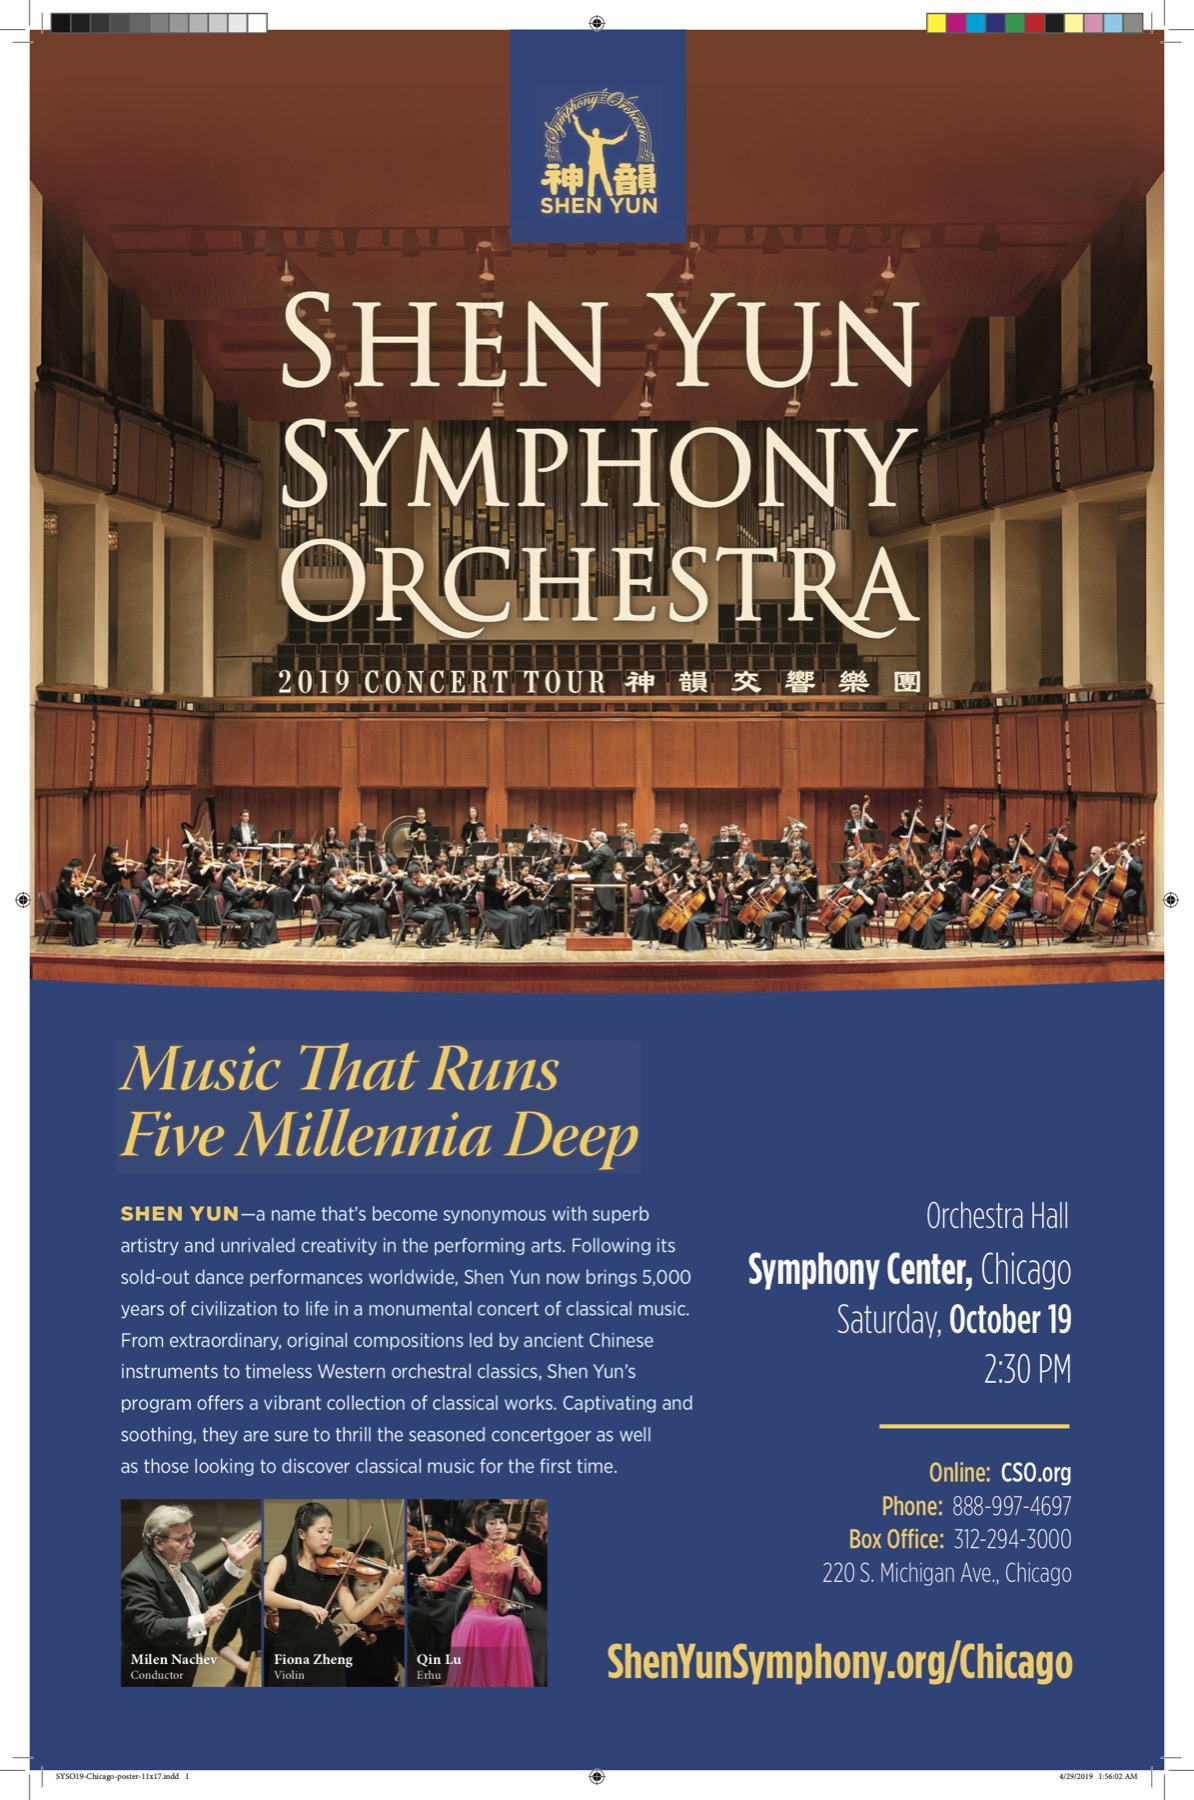 Shen Yun Symphony Orchestra promo for Chicago